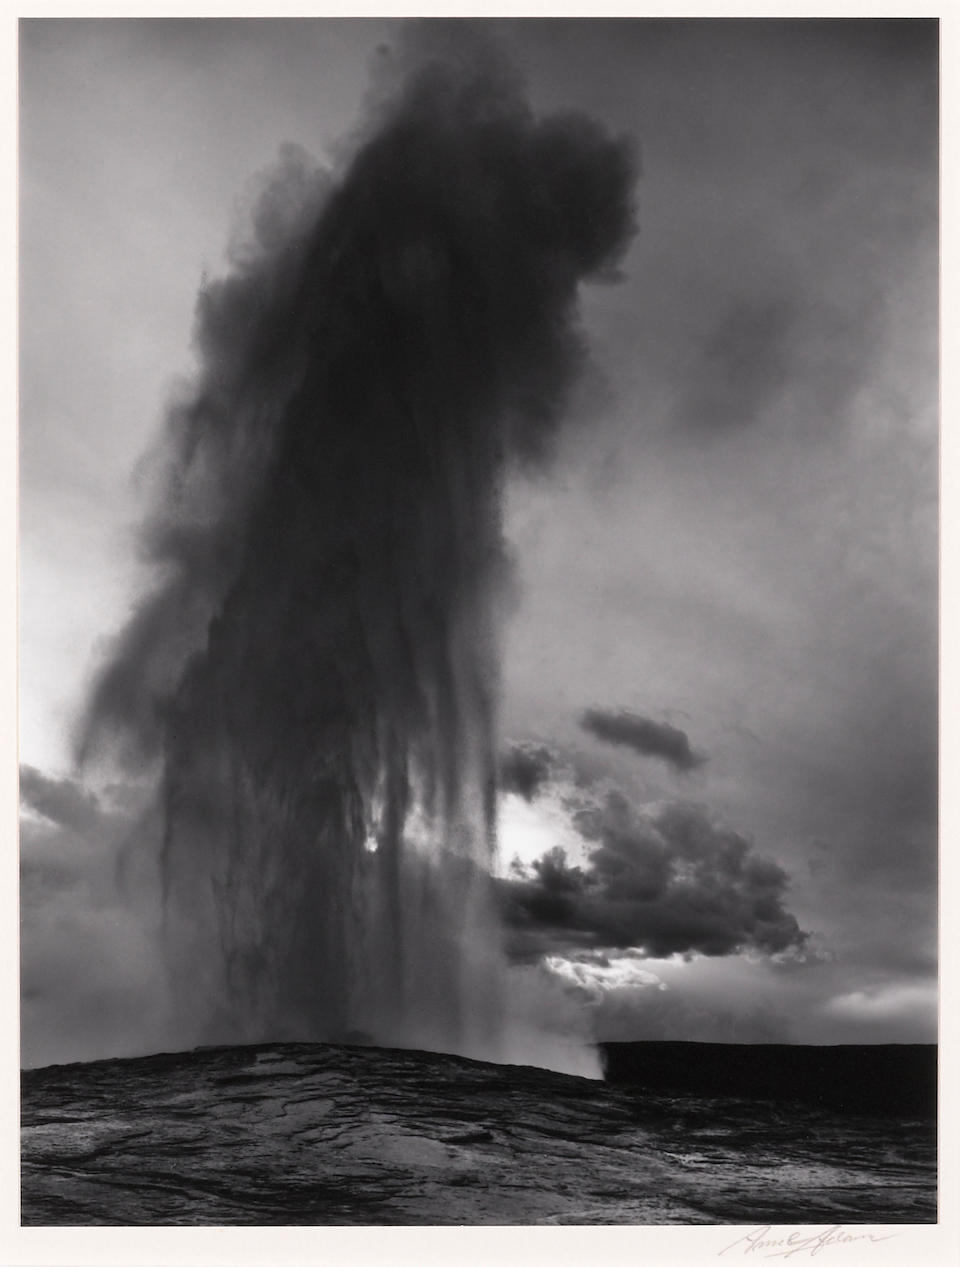 Ansel Adams, Old Faithful Geyser, Yellowstone National Park, Wyoming, 1941-1942/Printed 1950, Gelatin silver print 9 1/2 x 7 1/2 inches, mounted on a 18 x 14 archival mat.  Signed in pencil on recto, Edition 13/45